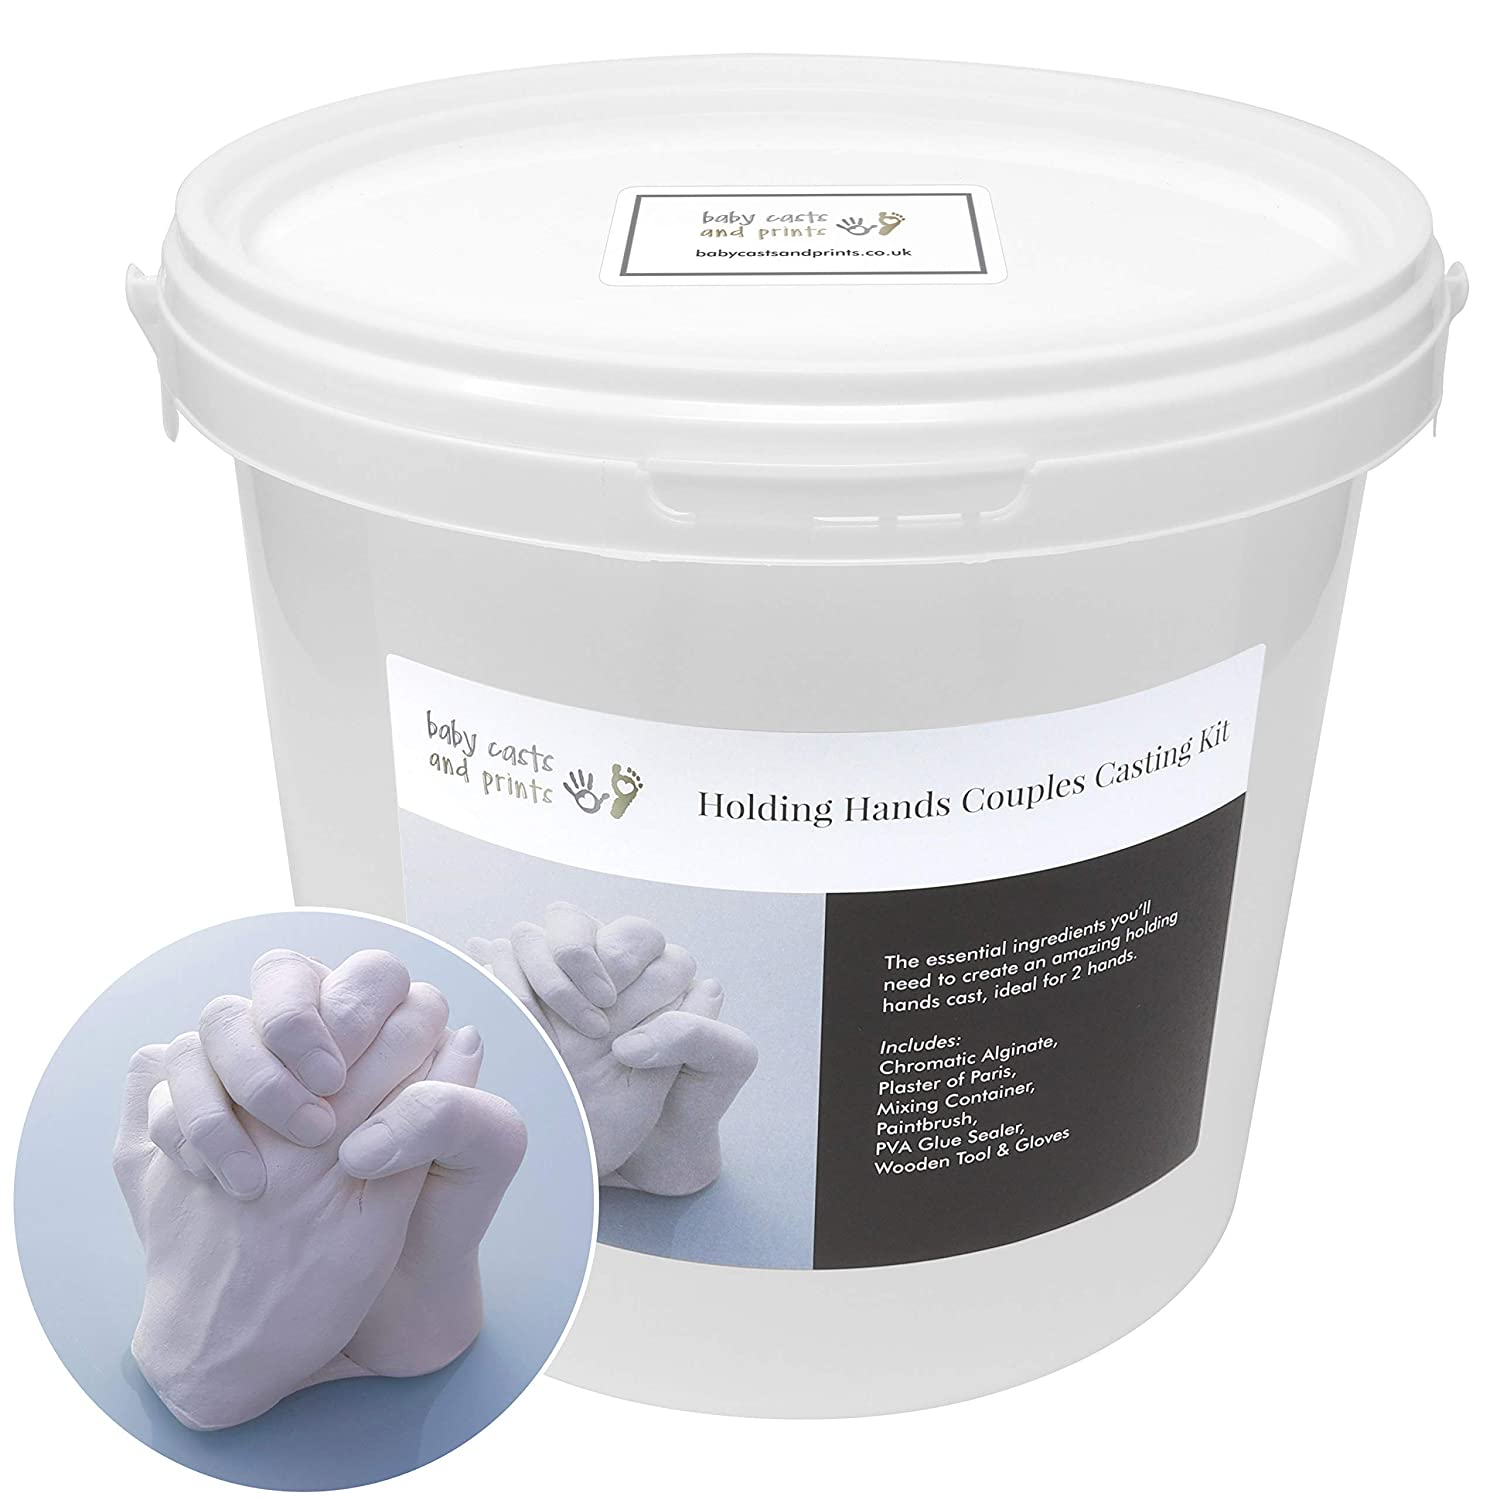 Holding Hands Family 3D Casting Kit - Moulding powder, plaster, mixing  bucket, tools - all you need to cast